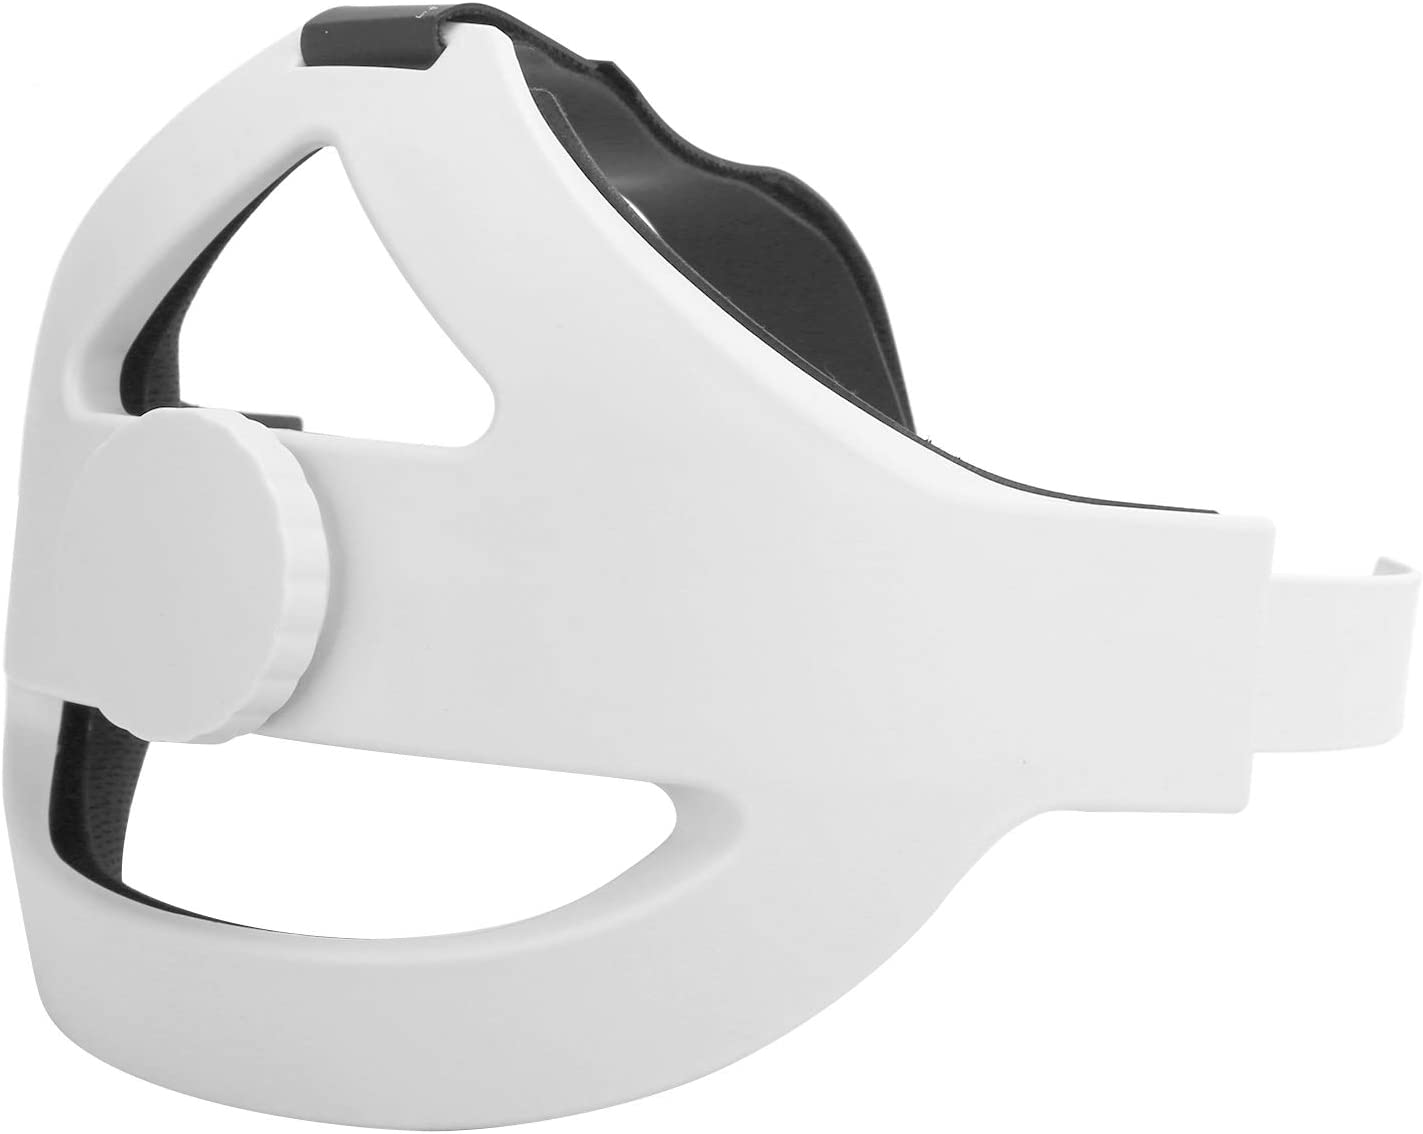 VR Head Strap, 360 Degree Rotation Adjustable Replace Elite Strap, for Oculus Quest 2 VR Headset Accessories, Support Scientific Reduce Head Pressure, with Short and Long Mounting Bracket, Manual